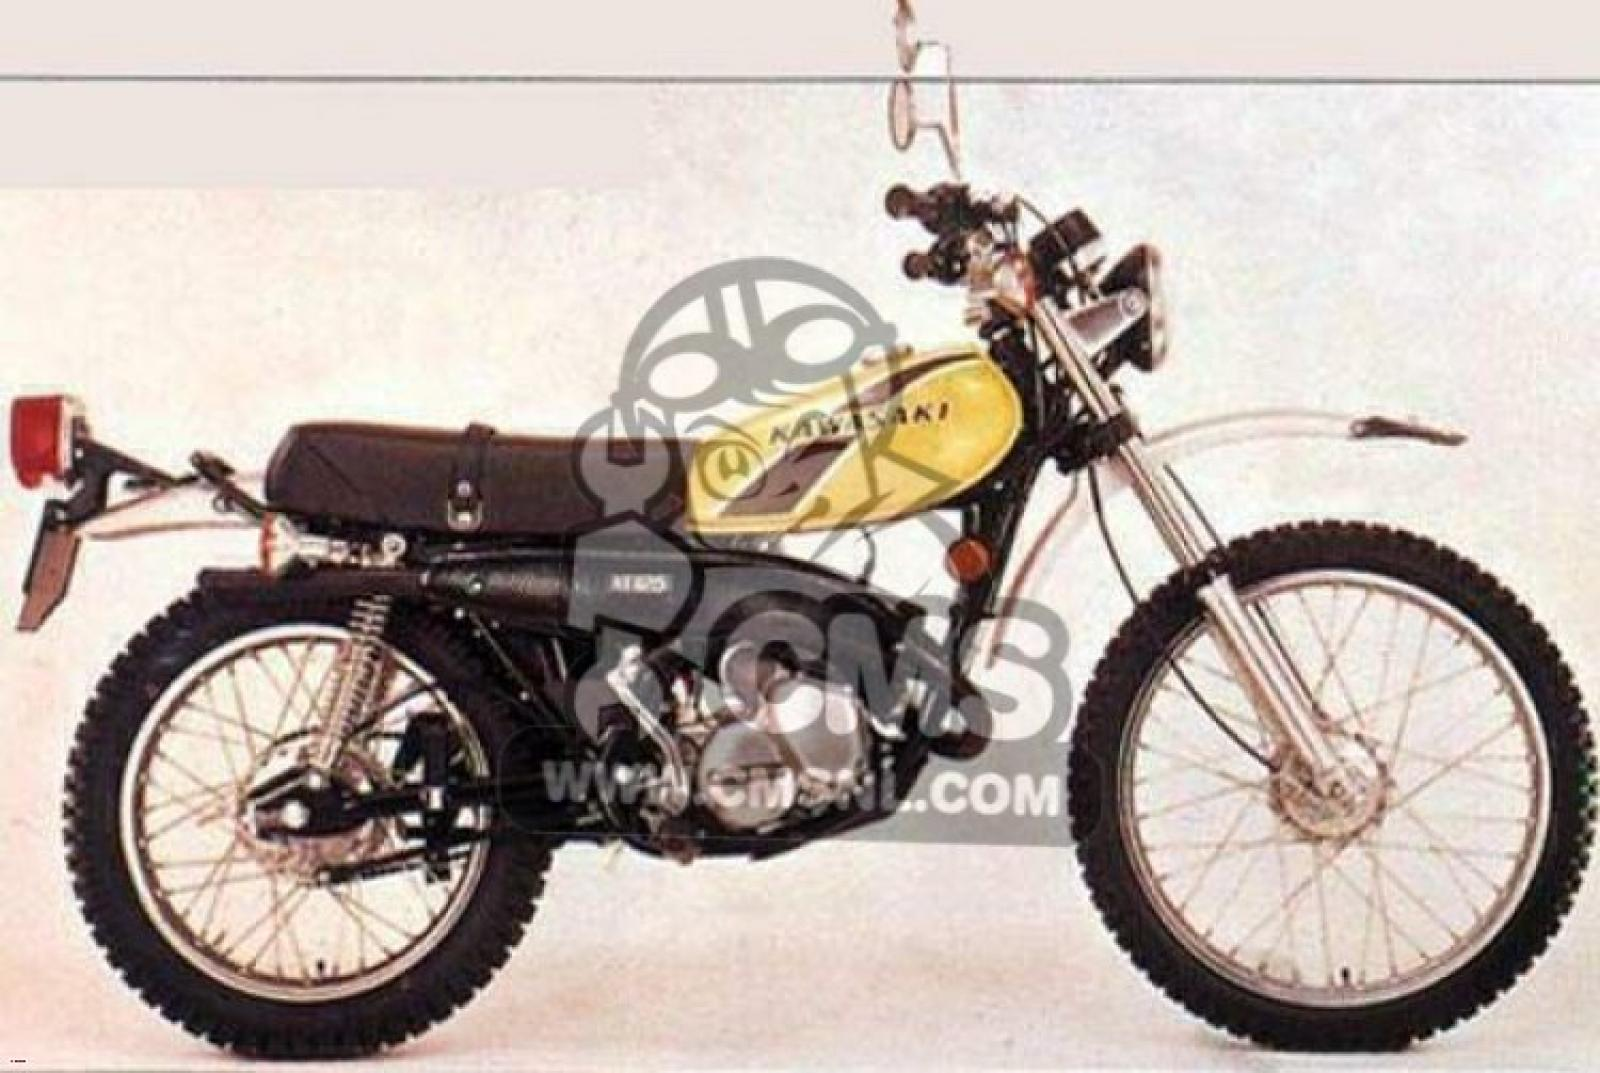 1990 Kawasaki Voyager Wiring Diagrams Detailed Schematics Diagram Mean Streak 1975 100 1994 Specs 1976 Ke100